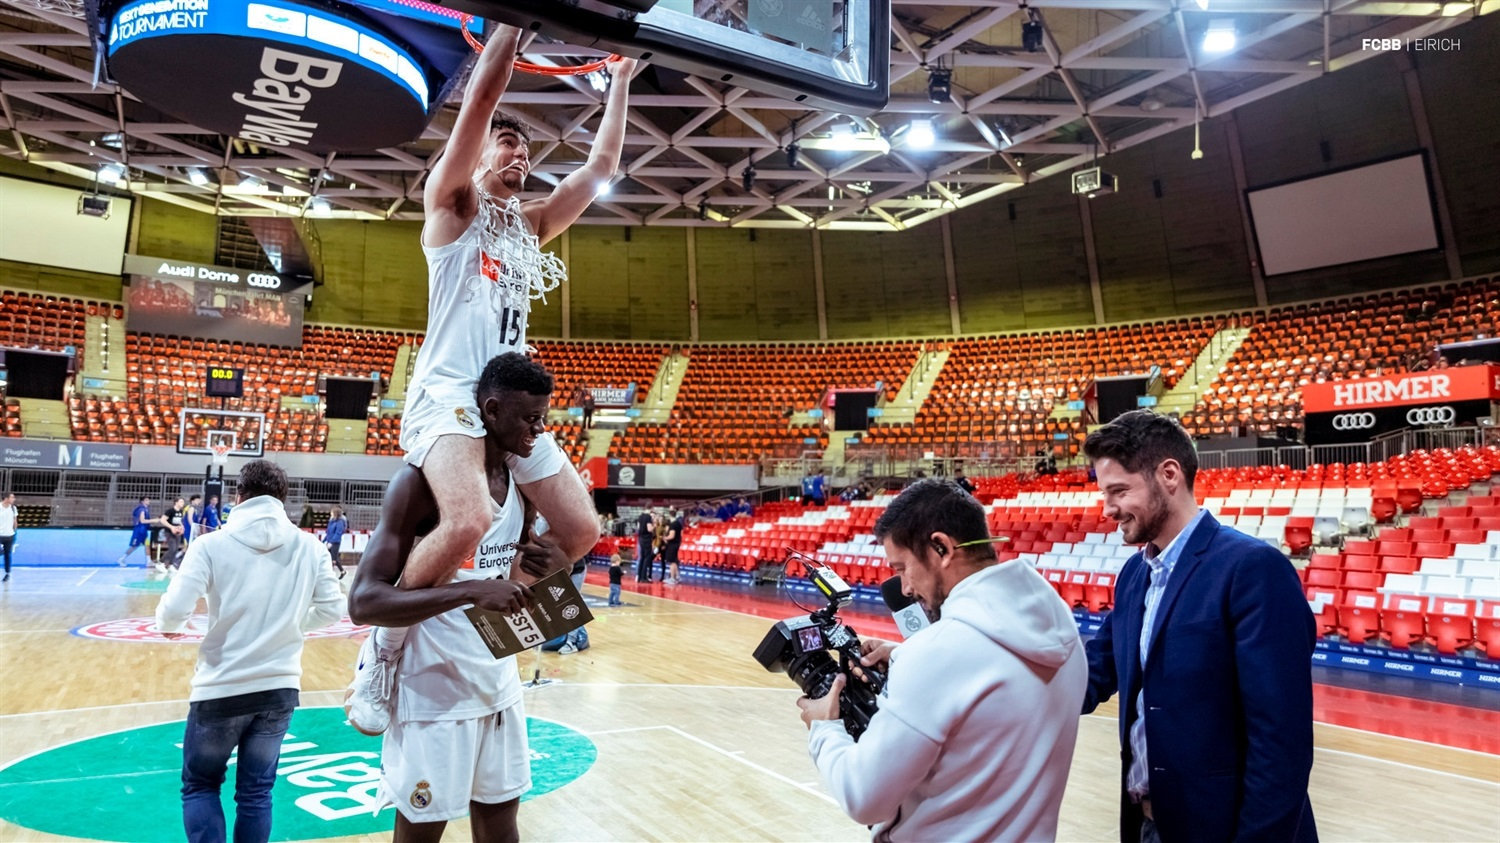 Jorge Mejias - U18 Real Madrid Champ - ANGT Munich 2019 (photo FCBB - Eirich) JT18